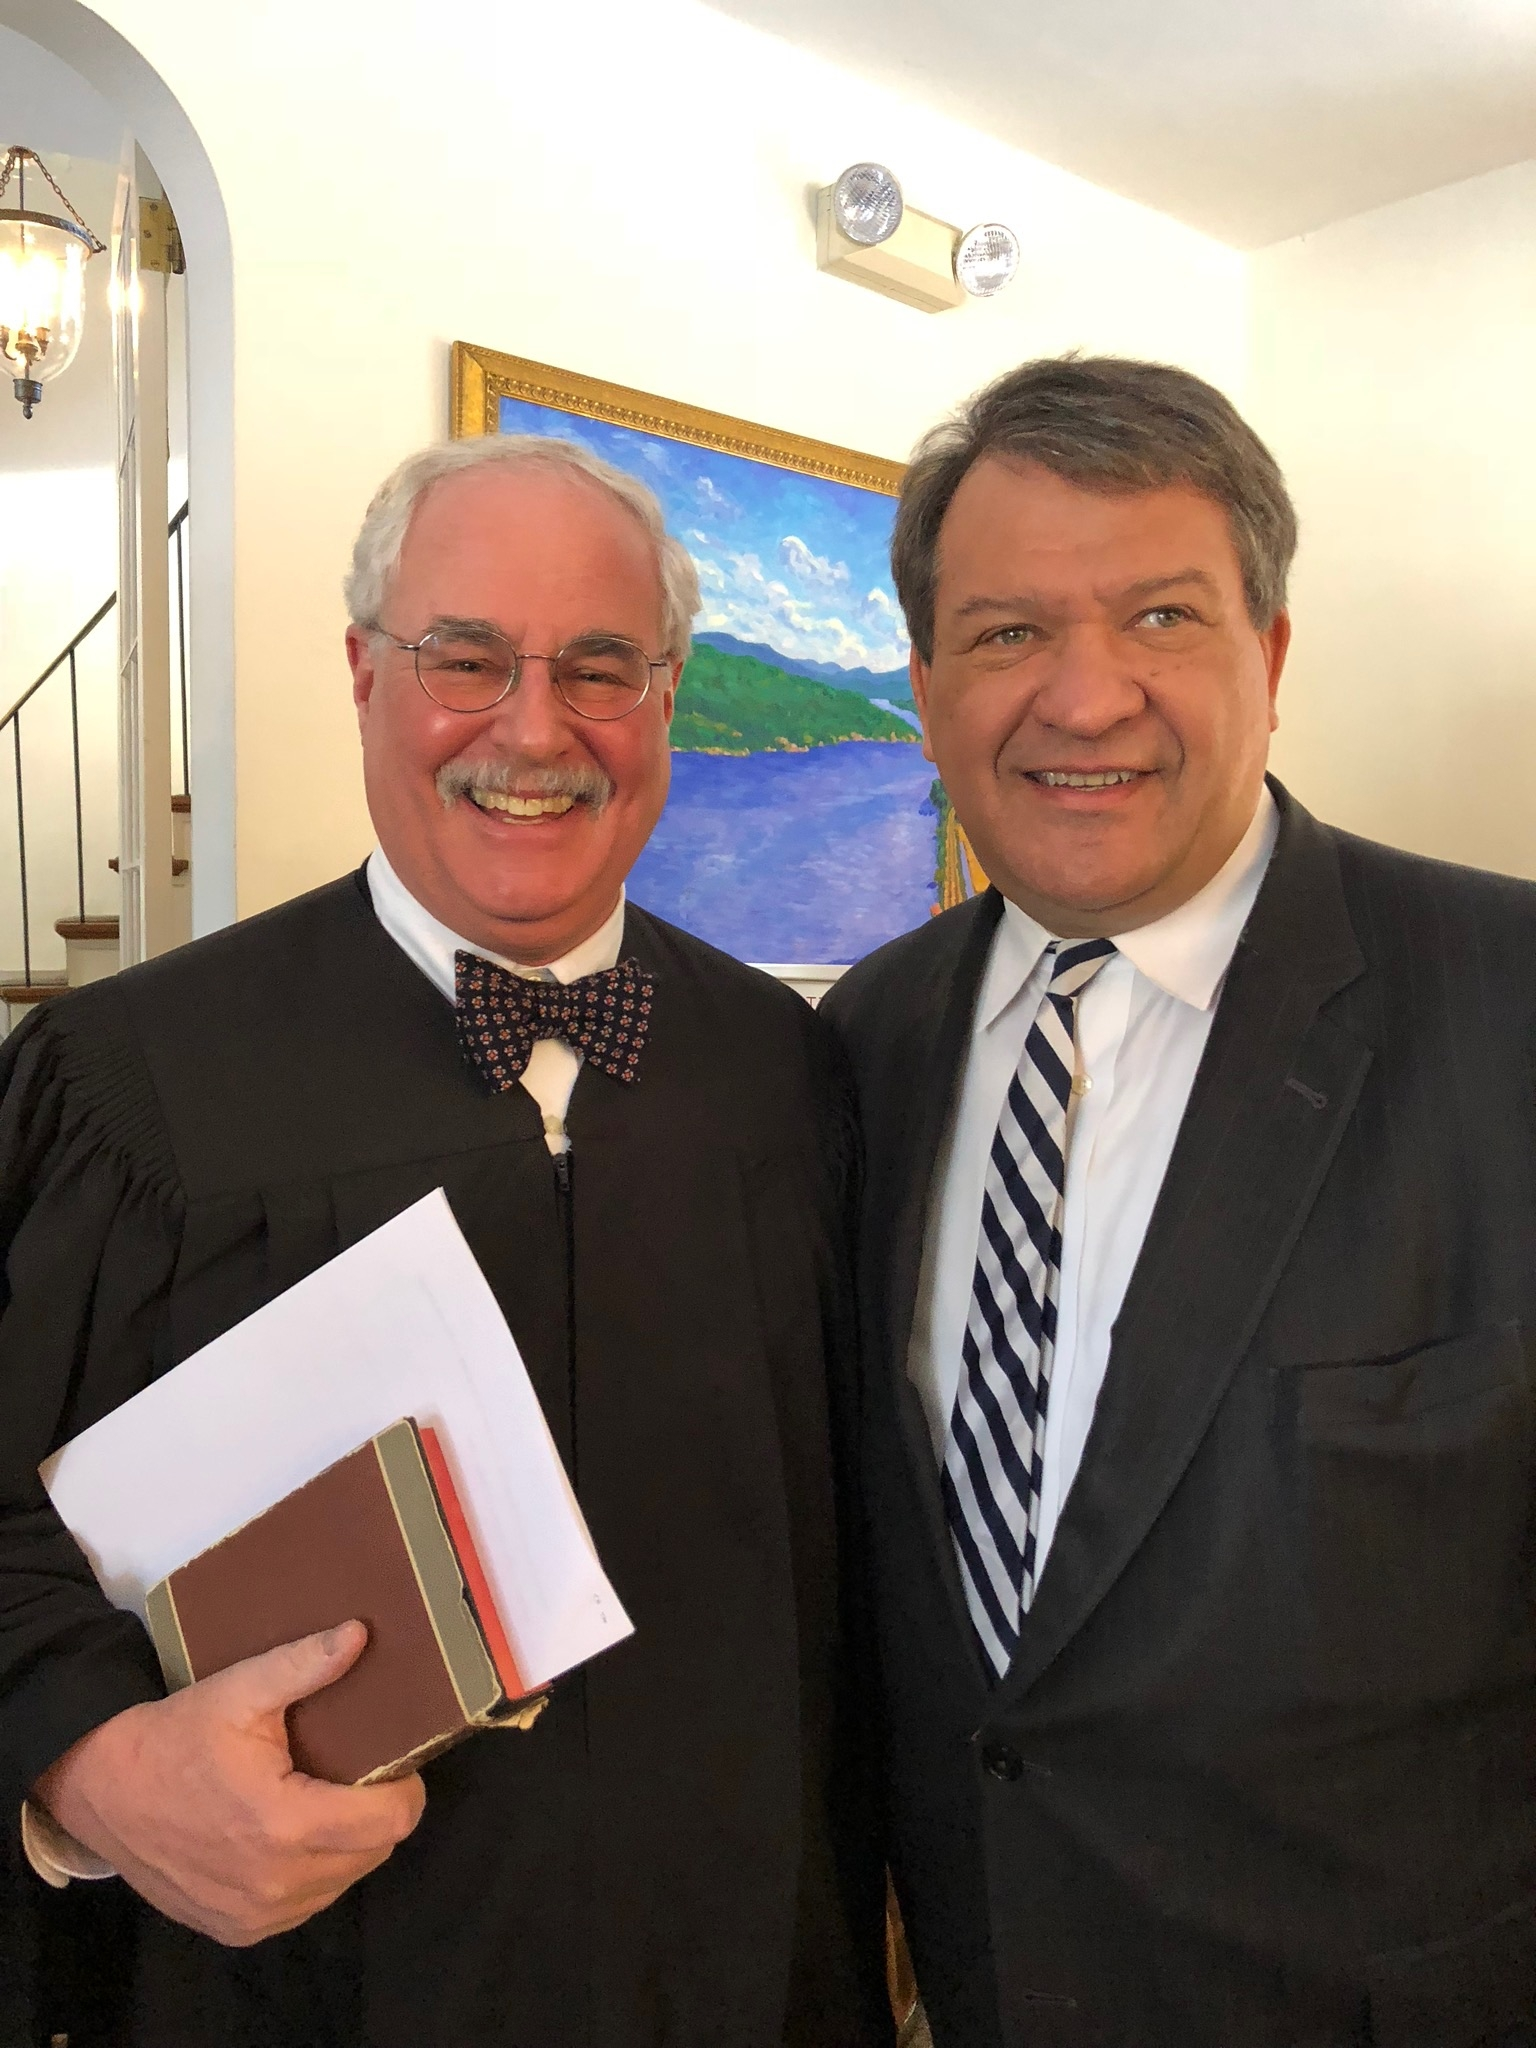 Town Justice Ira Clair with Westchester County Executive George Latimer.